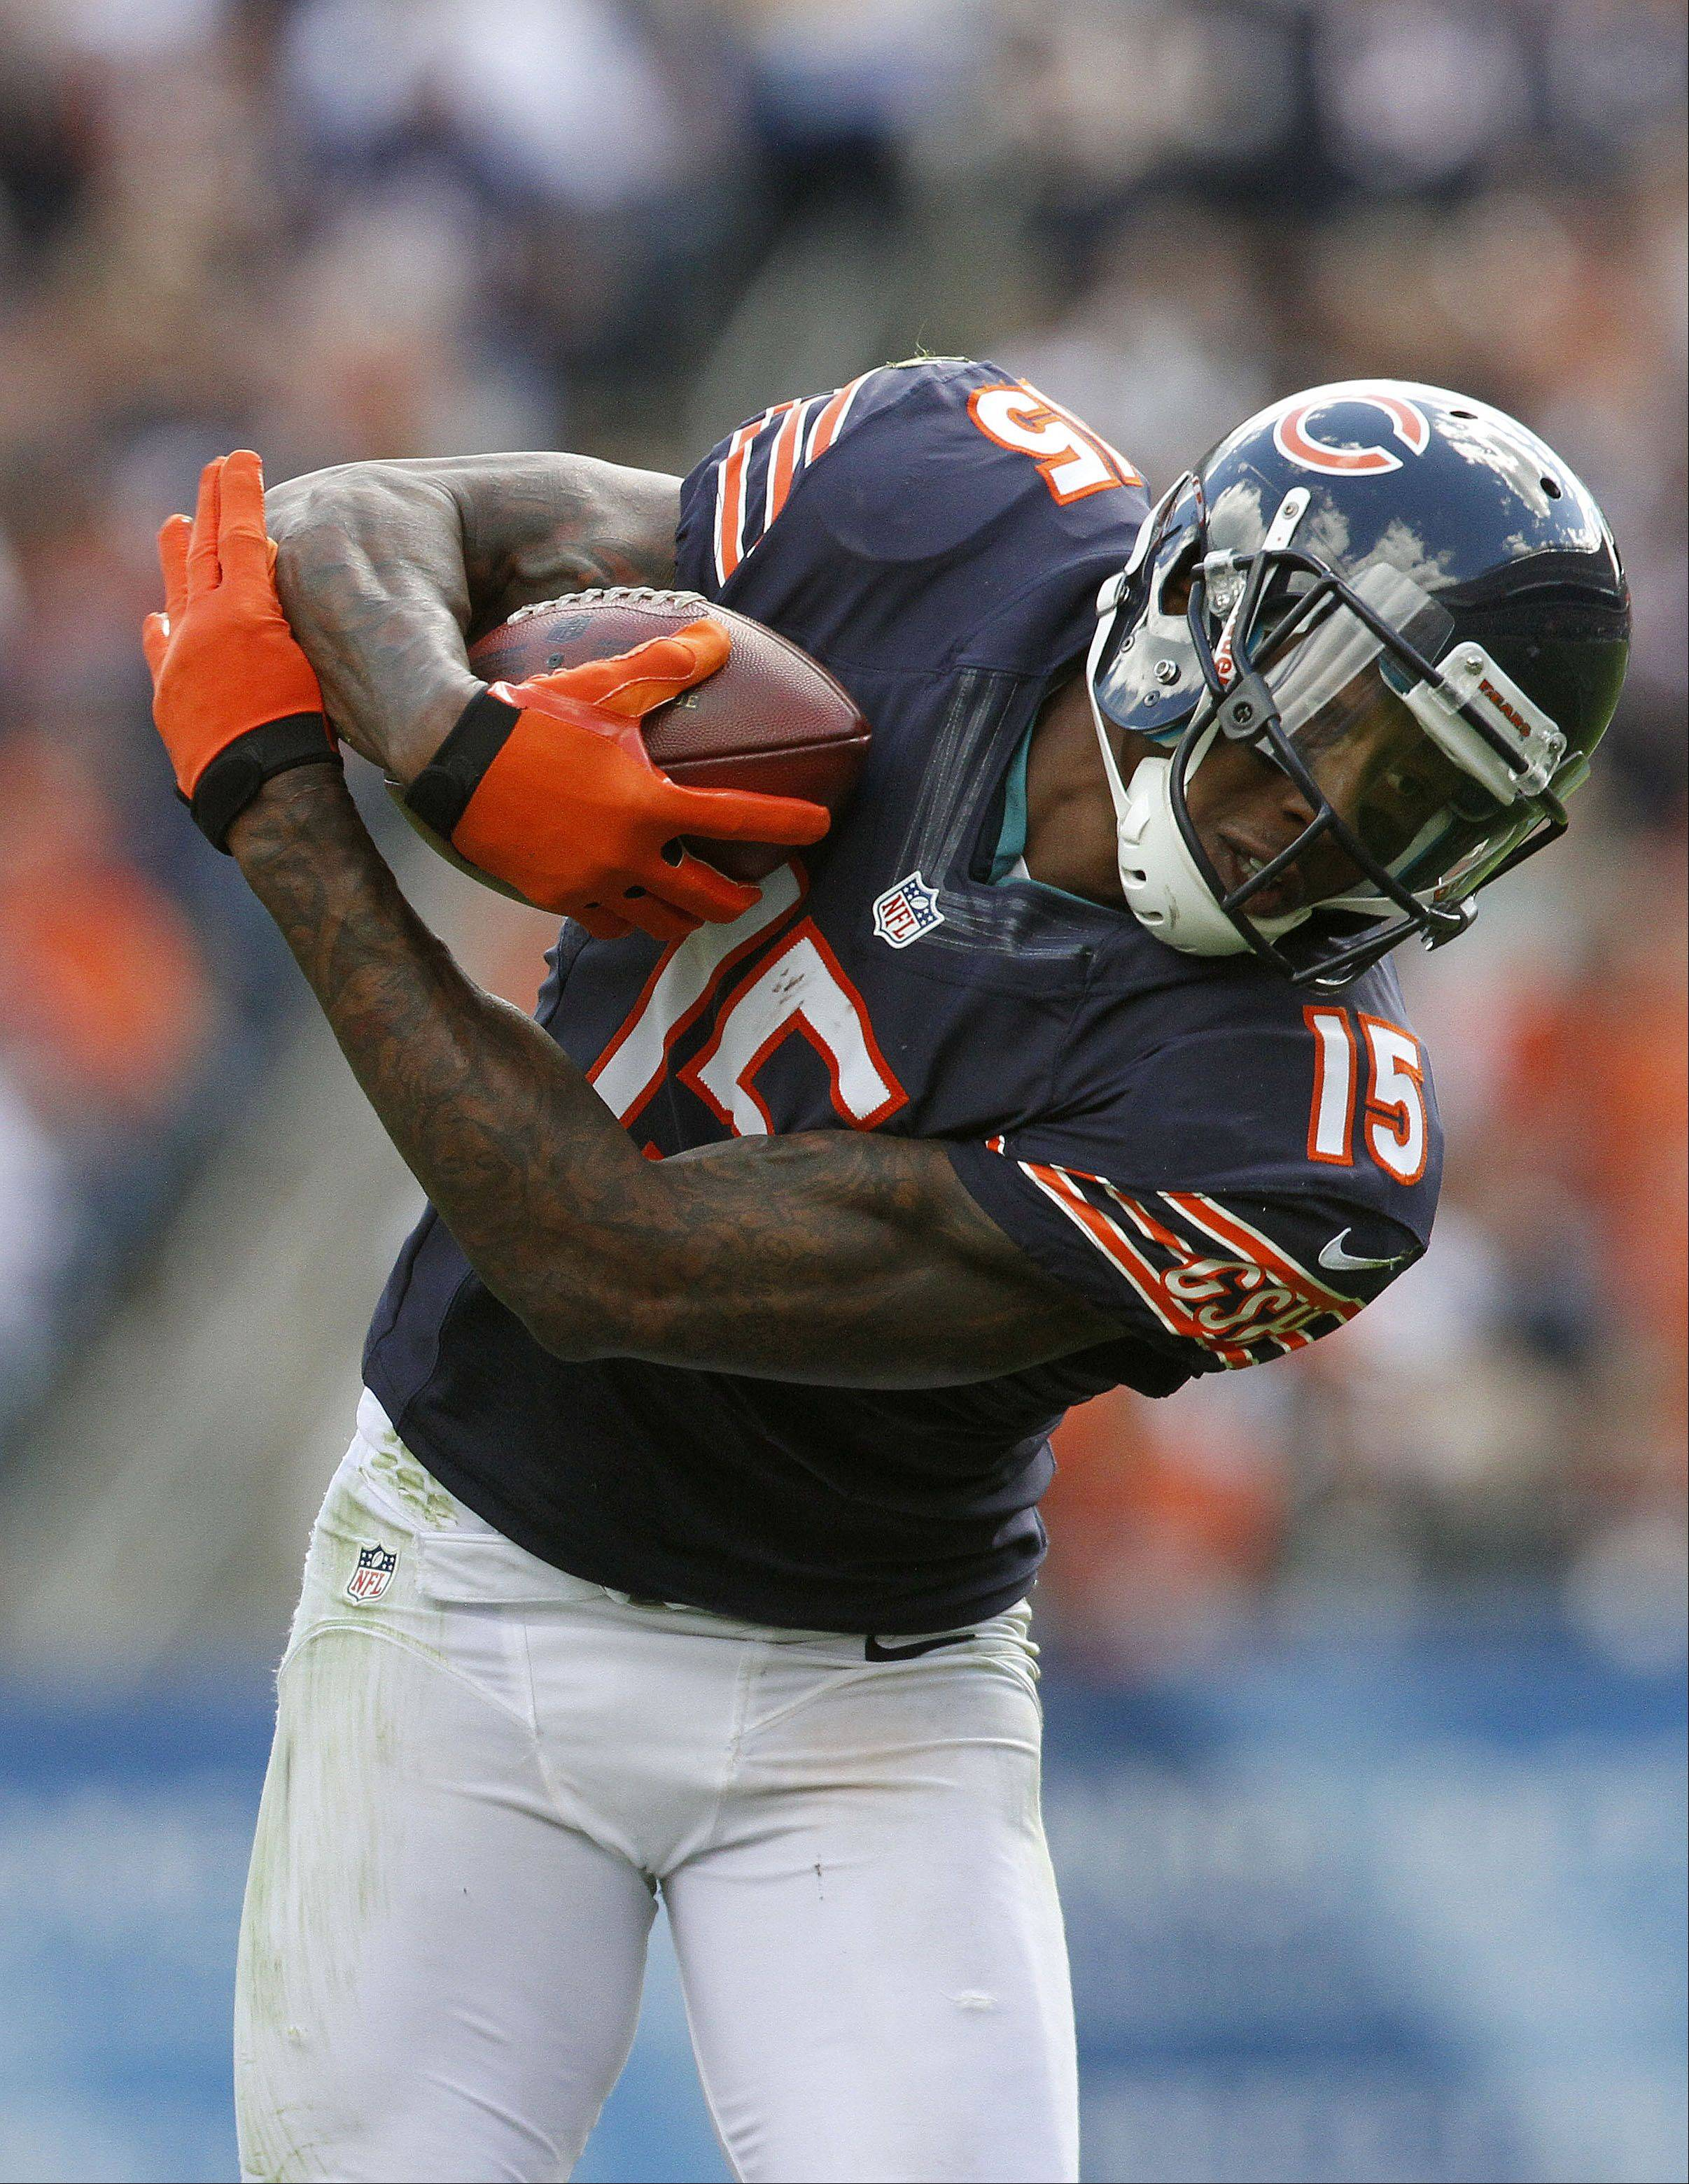 Chicago Bears wide receiver Brandon Marshall runs after a catch in the first half against the St. Louis Rams Sunday at Soldier Field in Chicago.